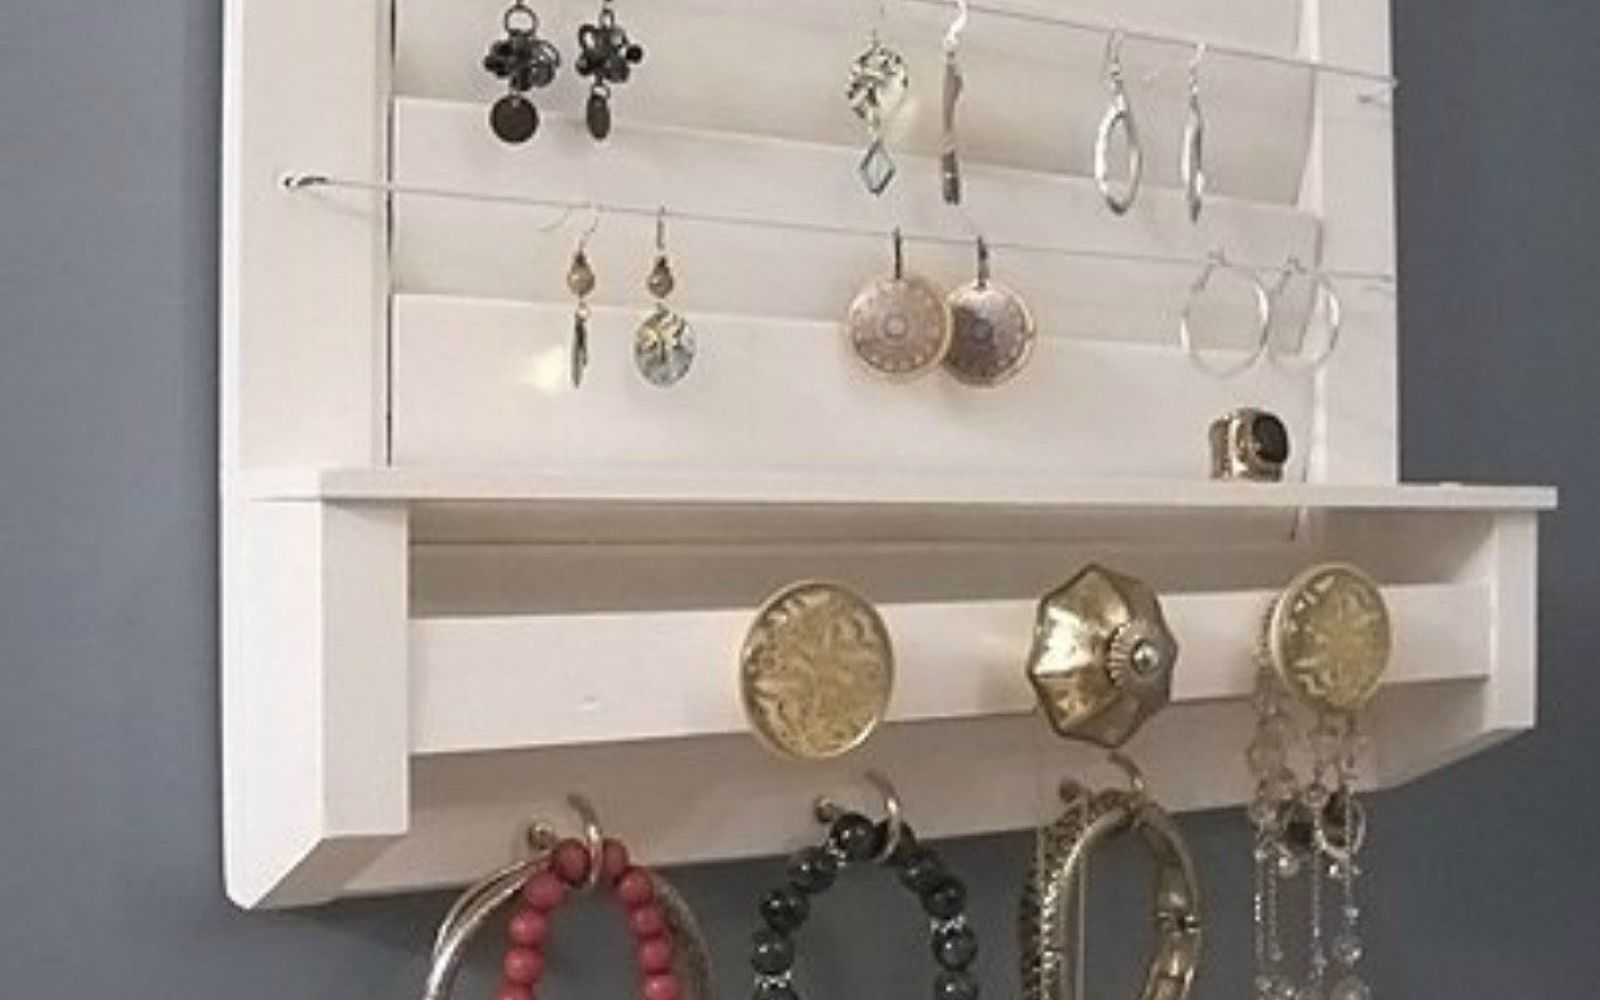 s 21 jewelry organizing ideas that are better than a jewelry box, organizing, This reclaimed window shutter